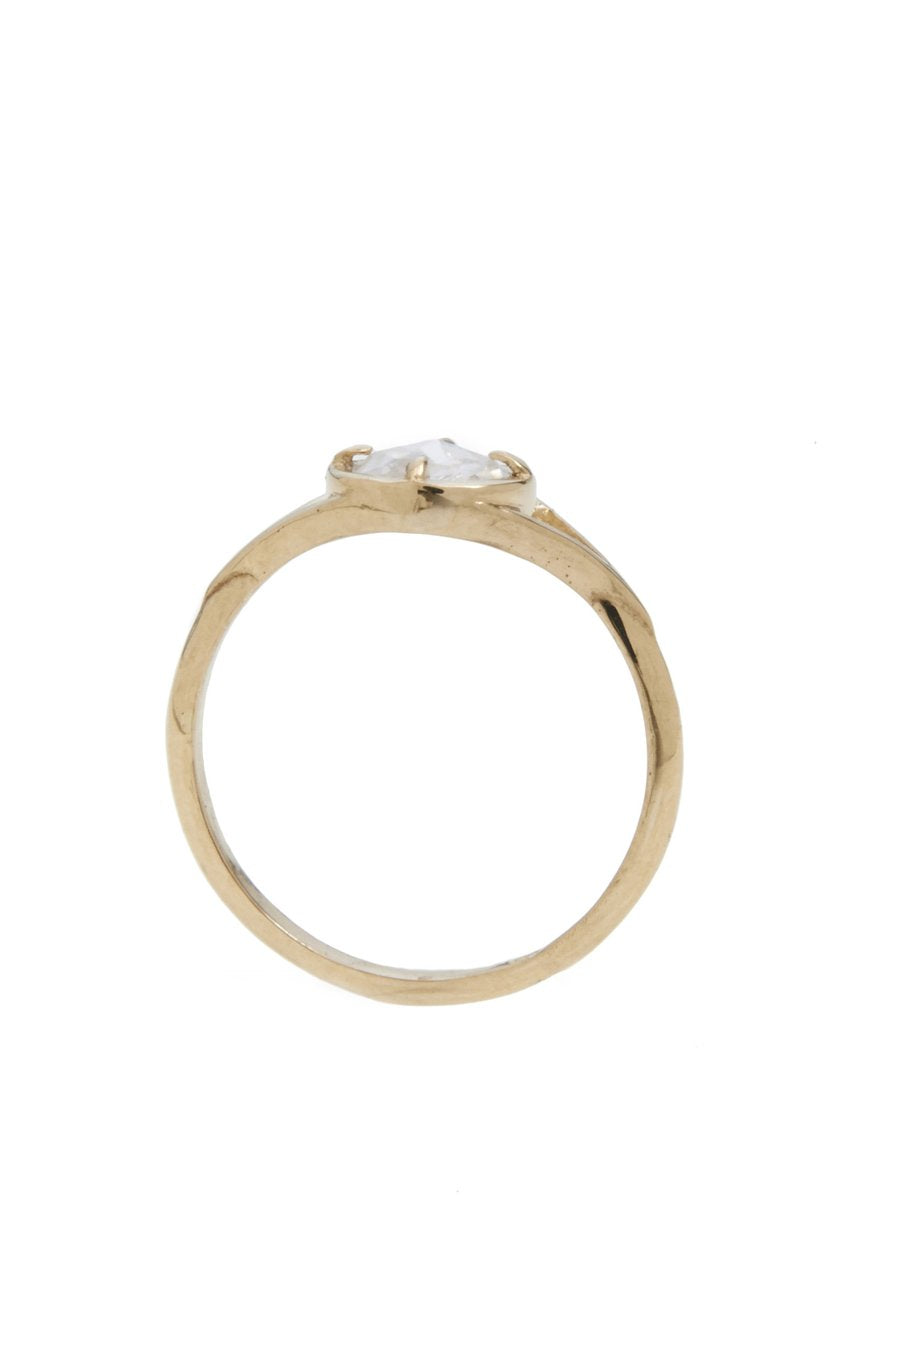 Dylan Ring / 14kt Yellow Gold / CZ